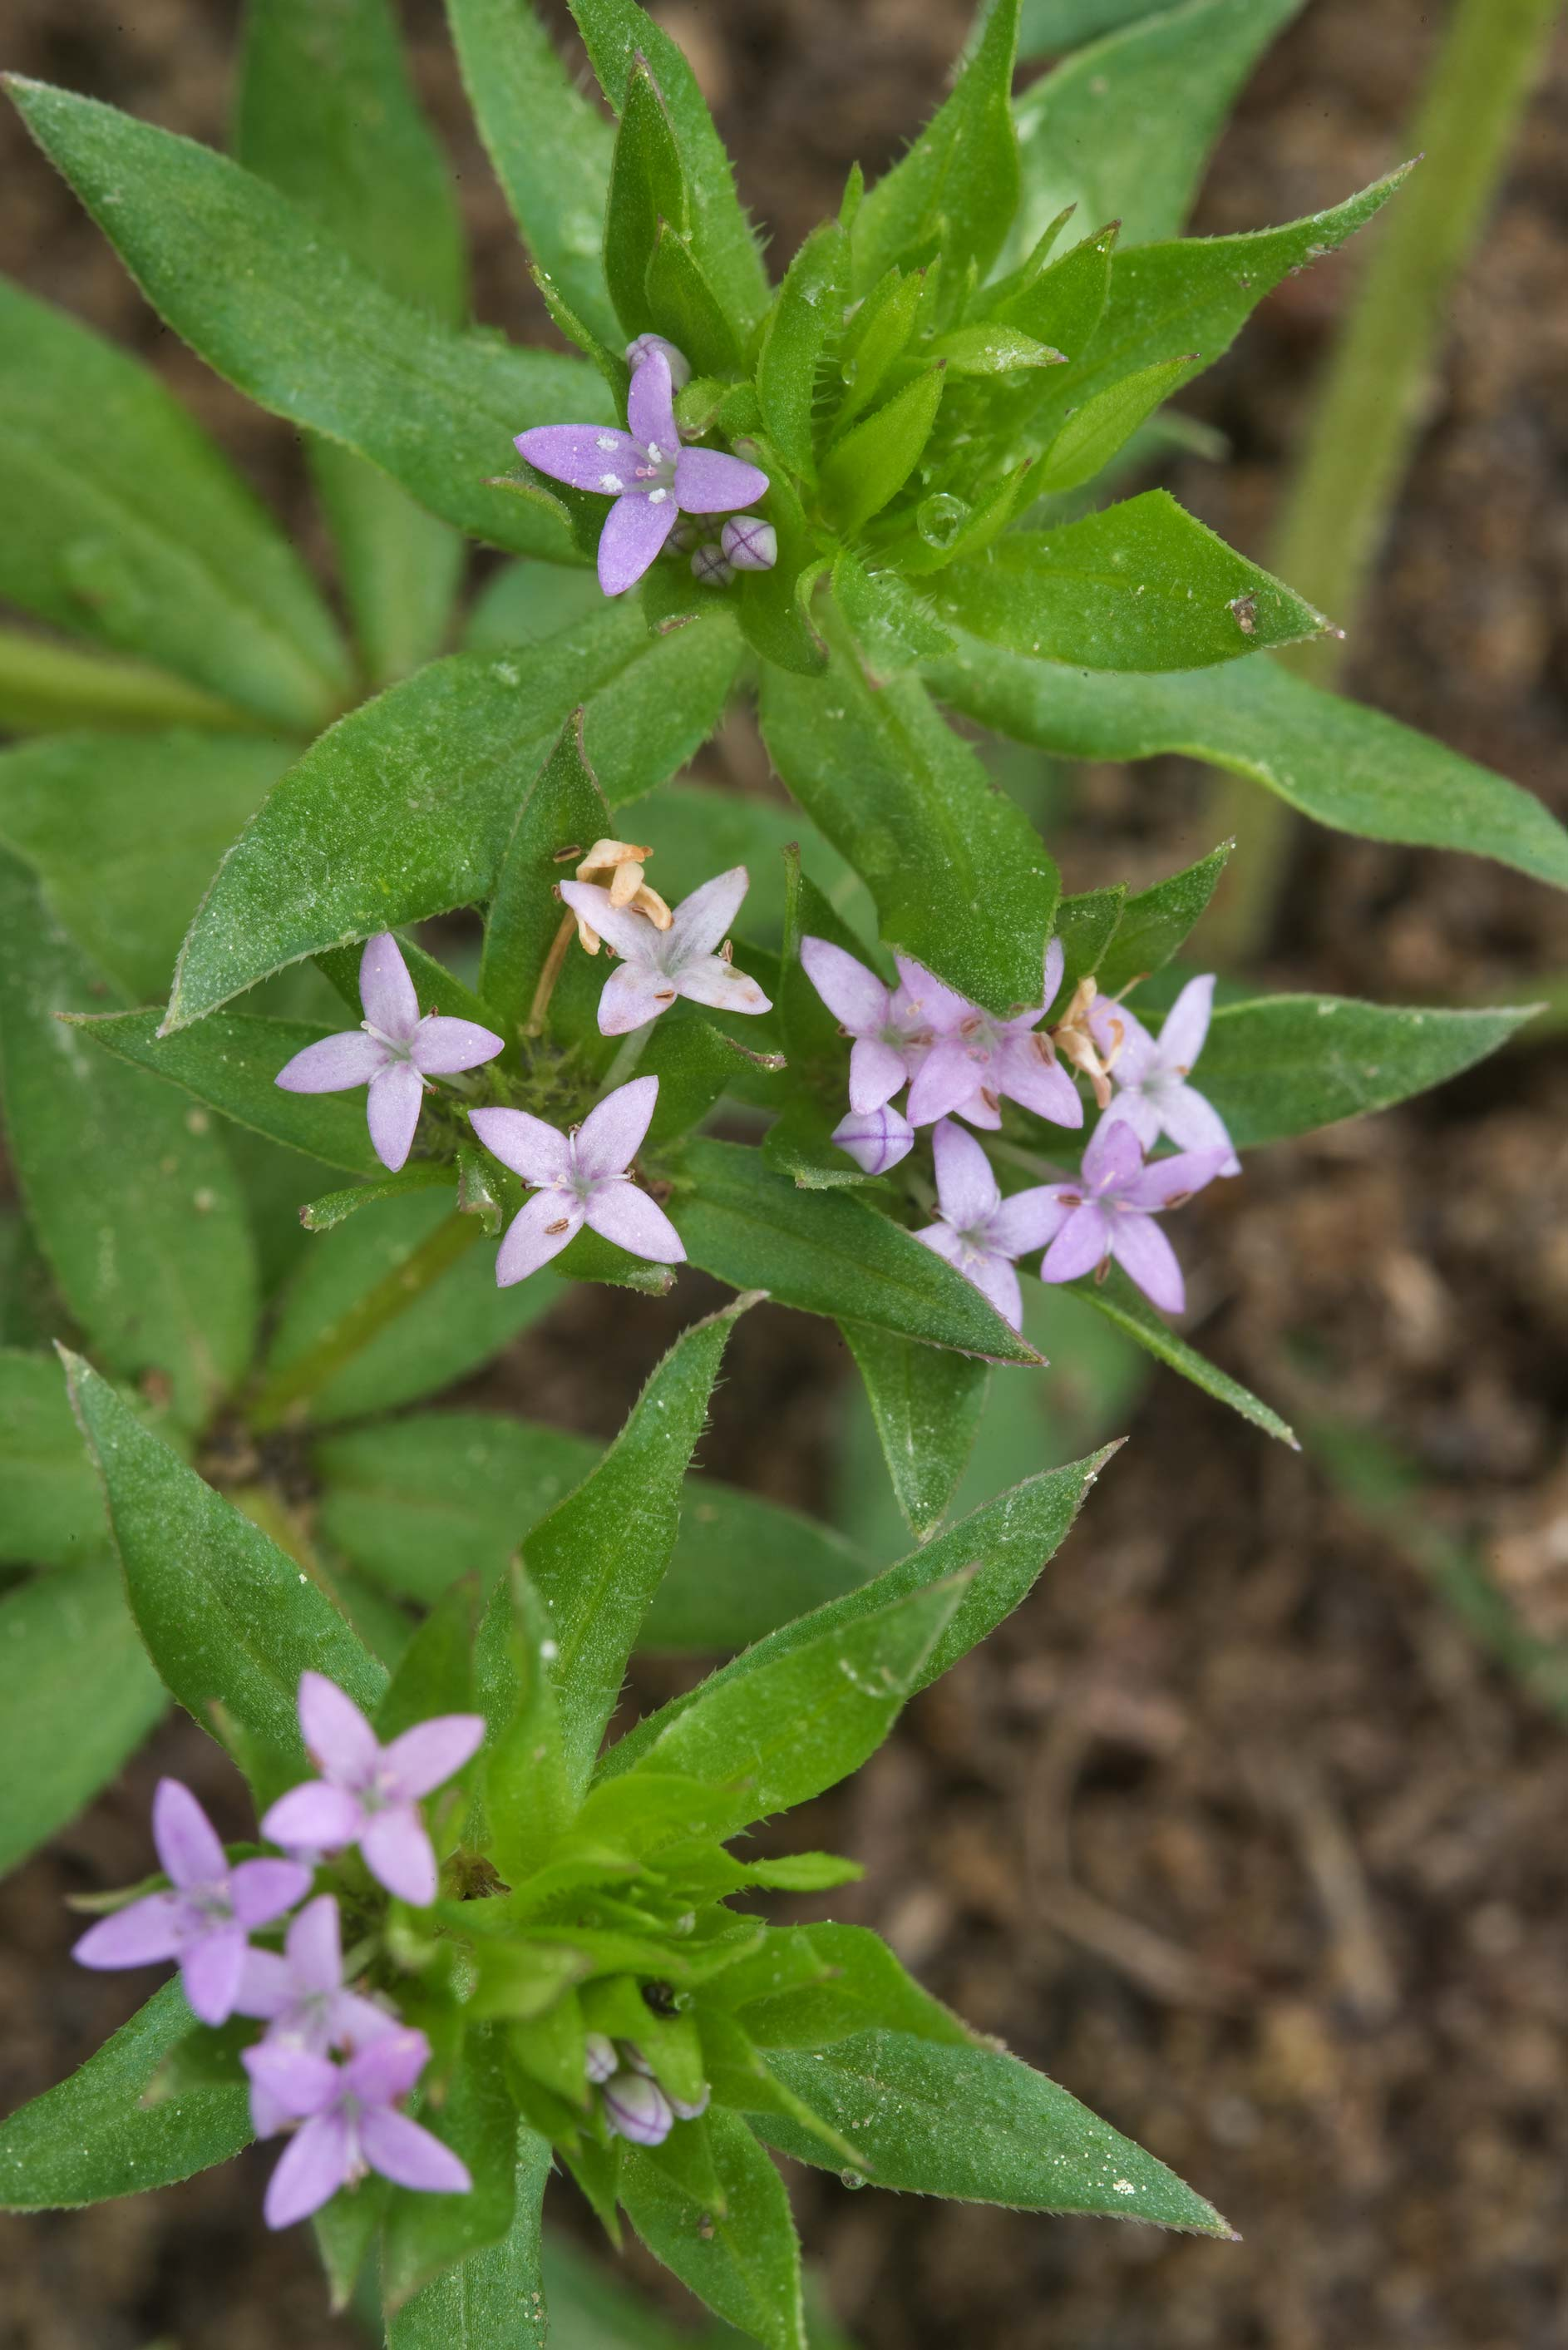 Flowers of blue field madder (spurwort, Sherardia...Pen Creek Park. College Station, Texas